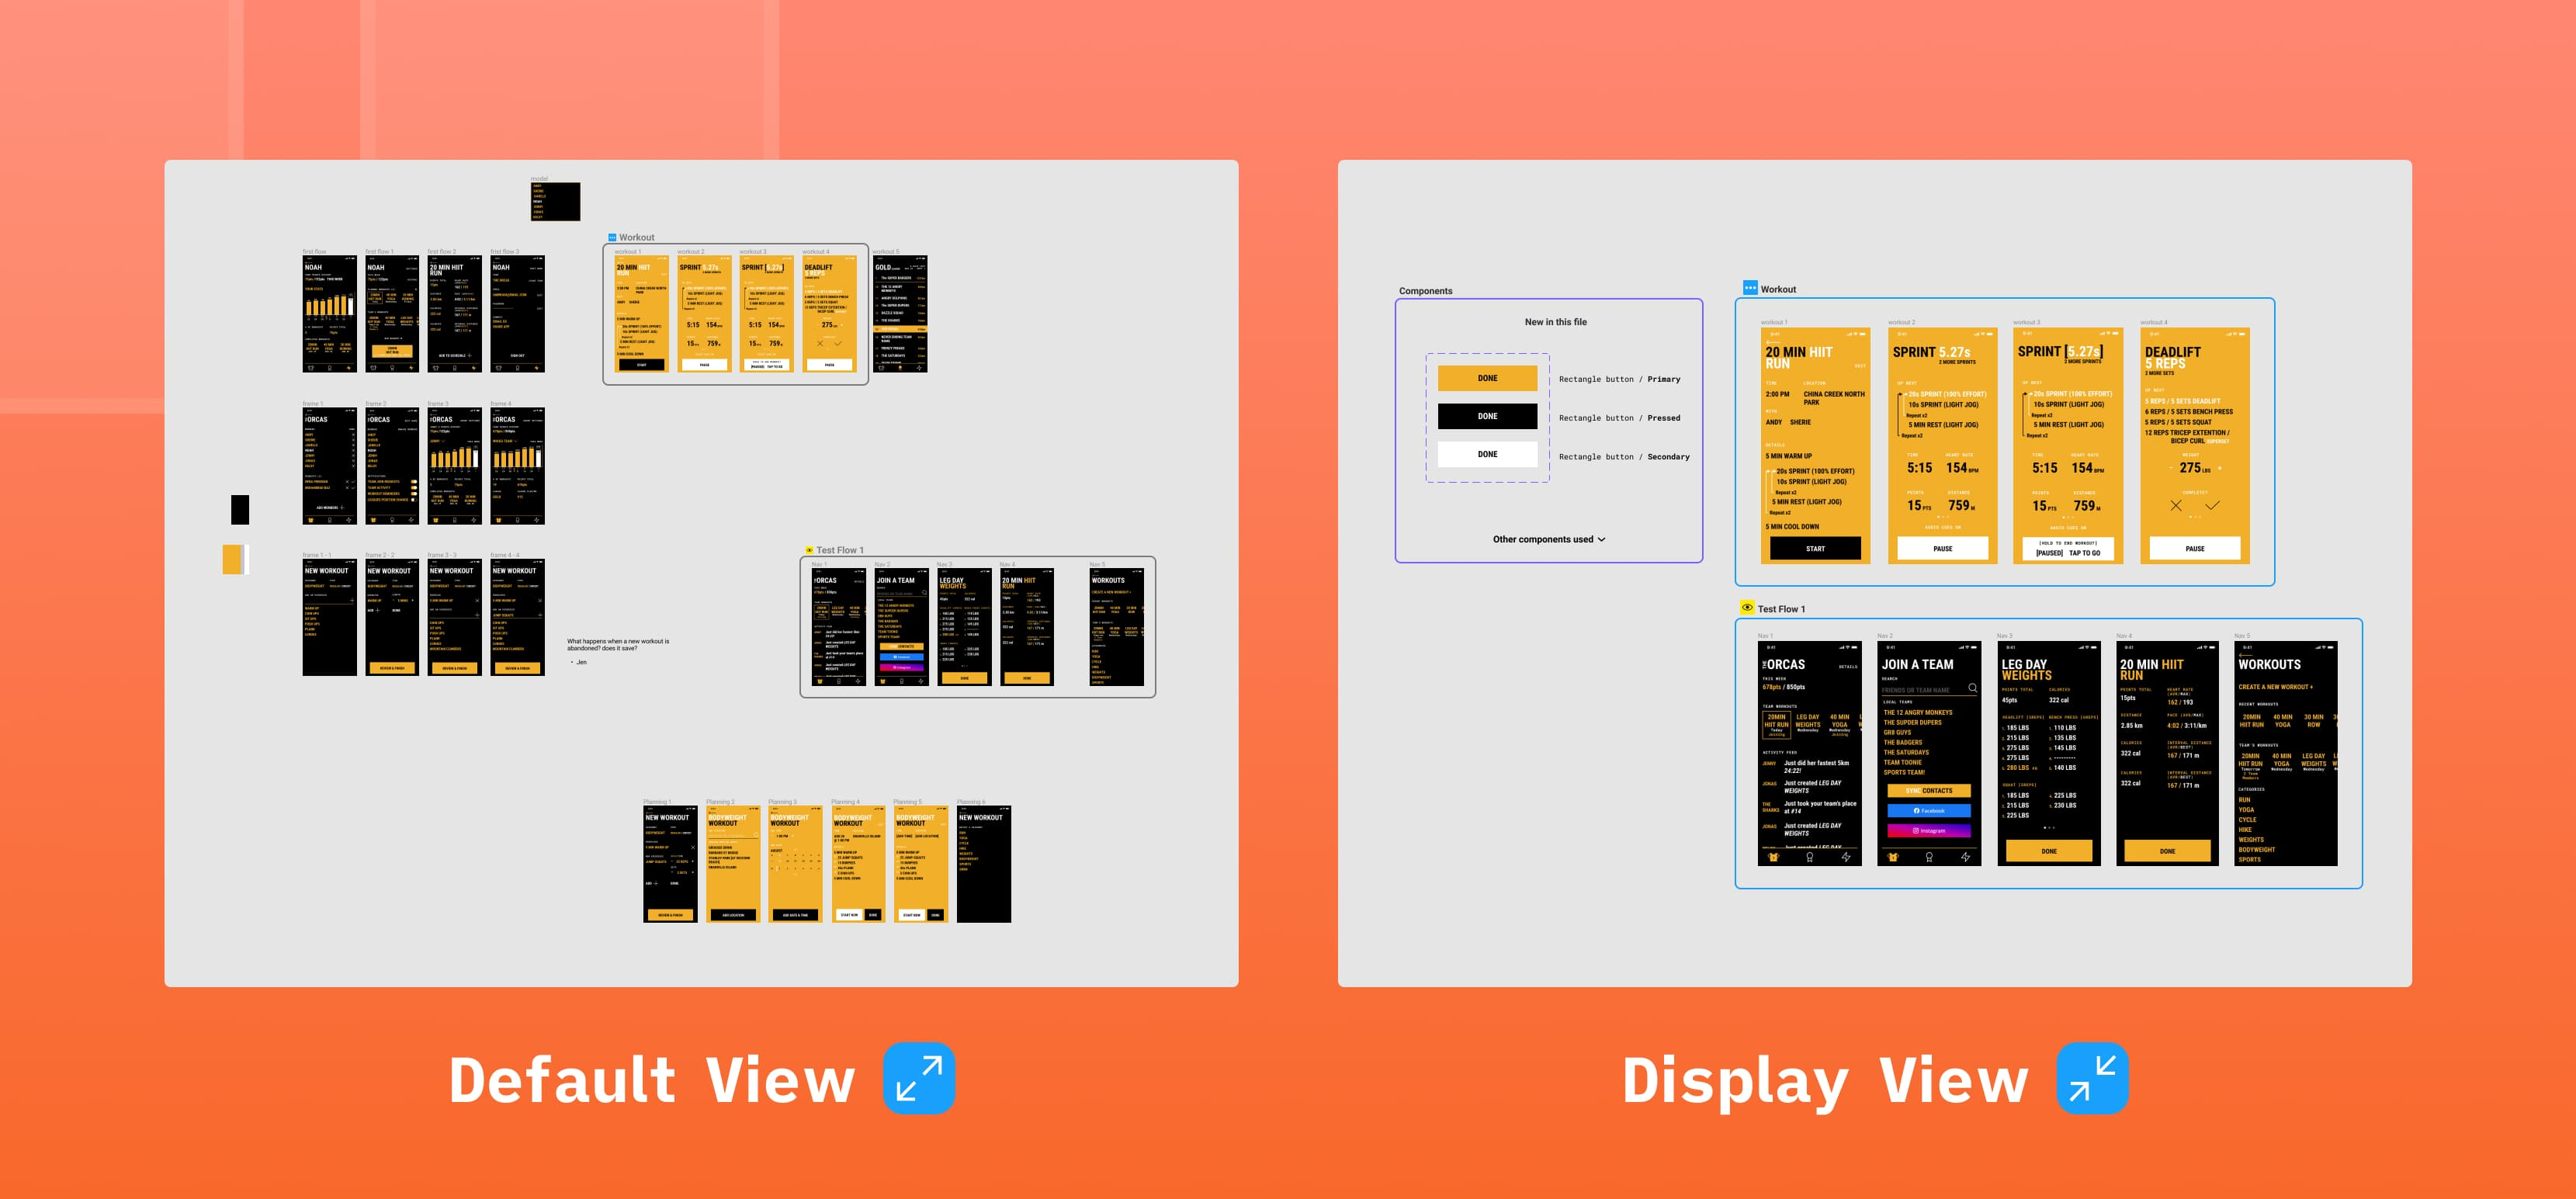 Comparing Figma's default canvas view with a proposed display view which hides unnecessary frames